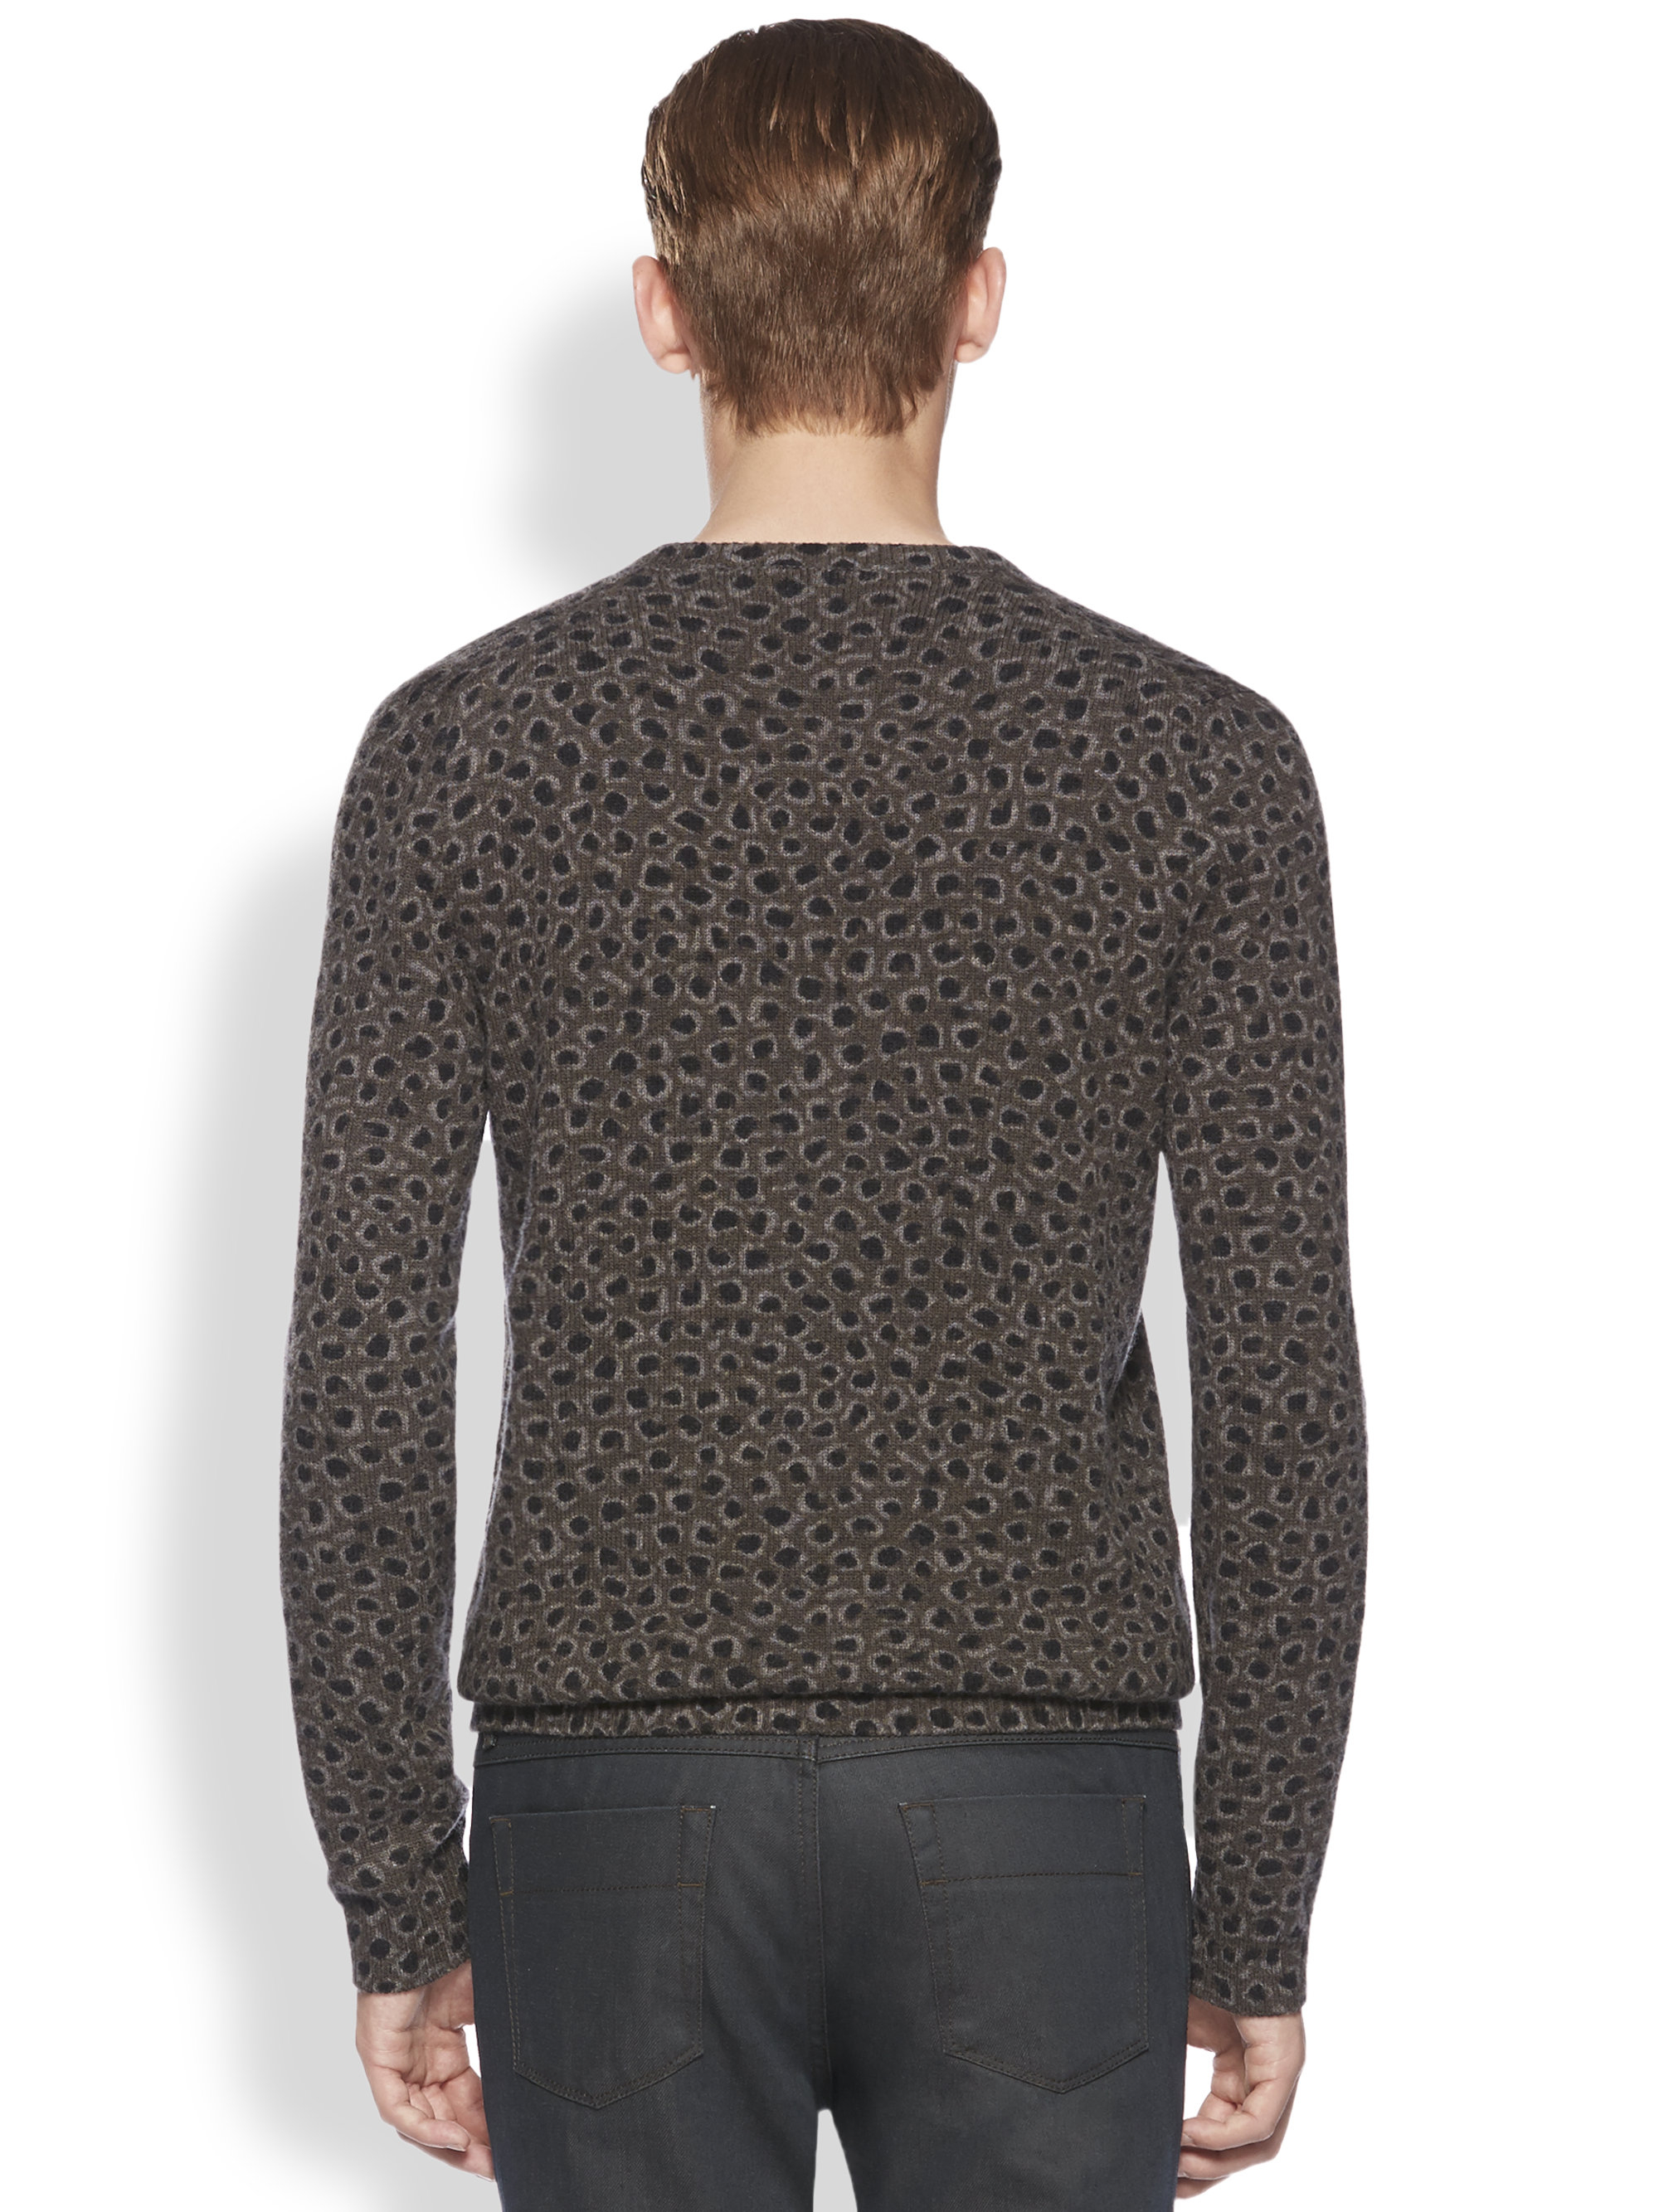 Gucci Leopard Print Knit Vneck Sweater in Blue for Men | Lyst